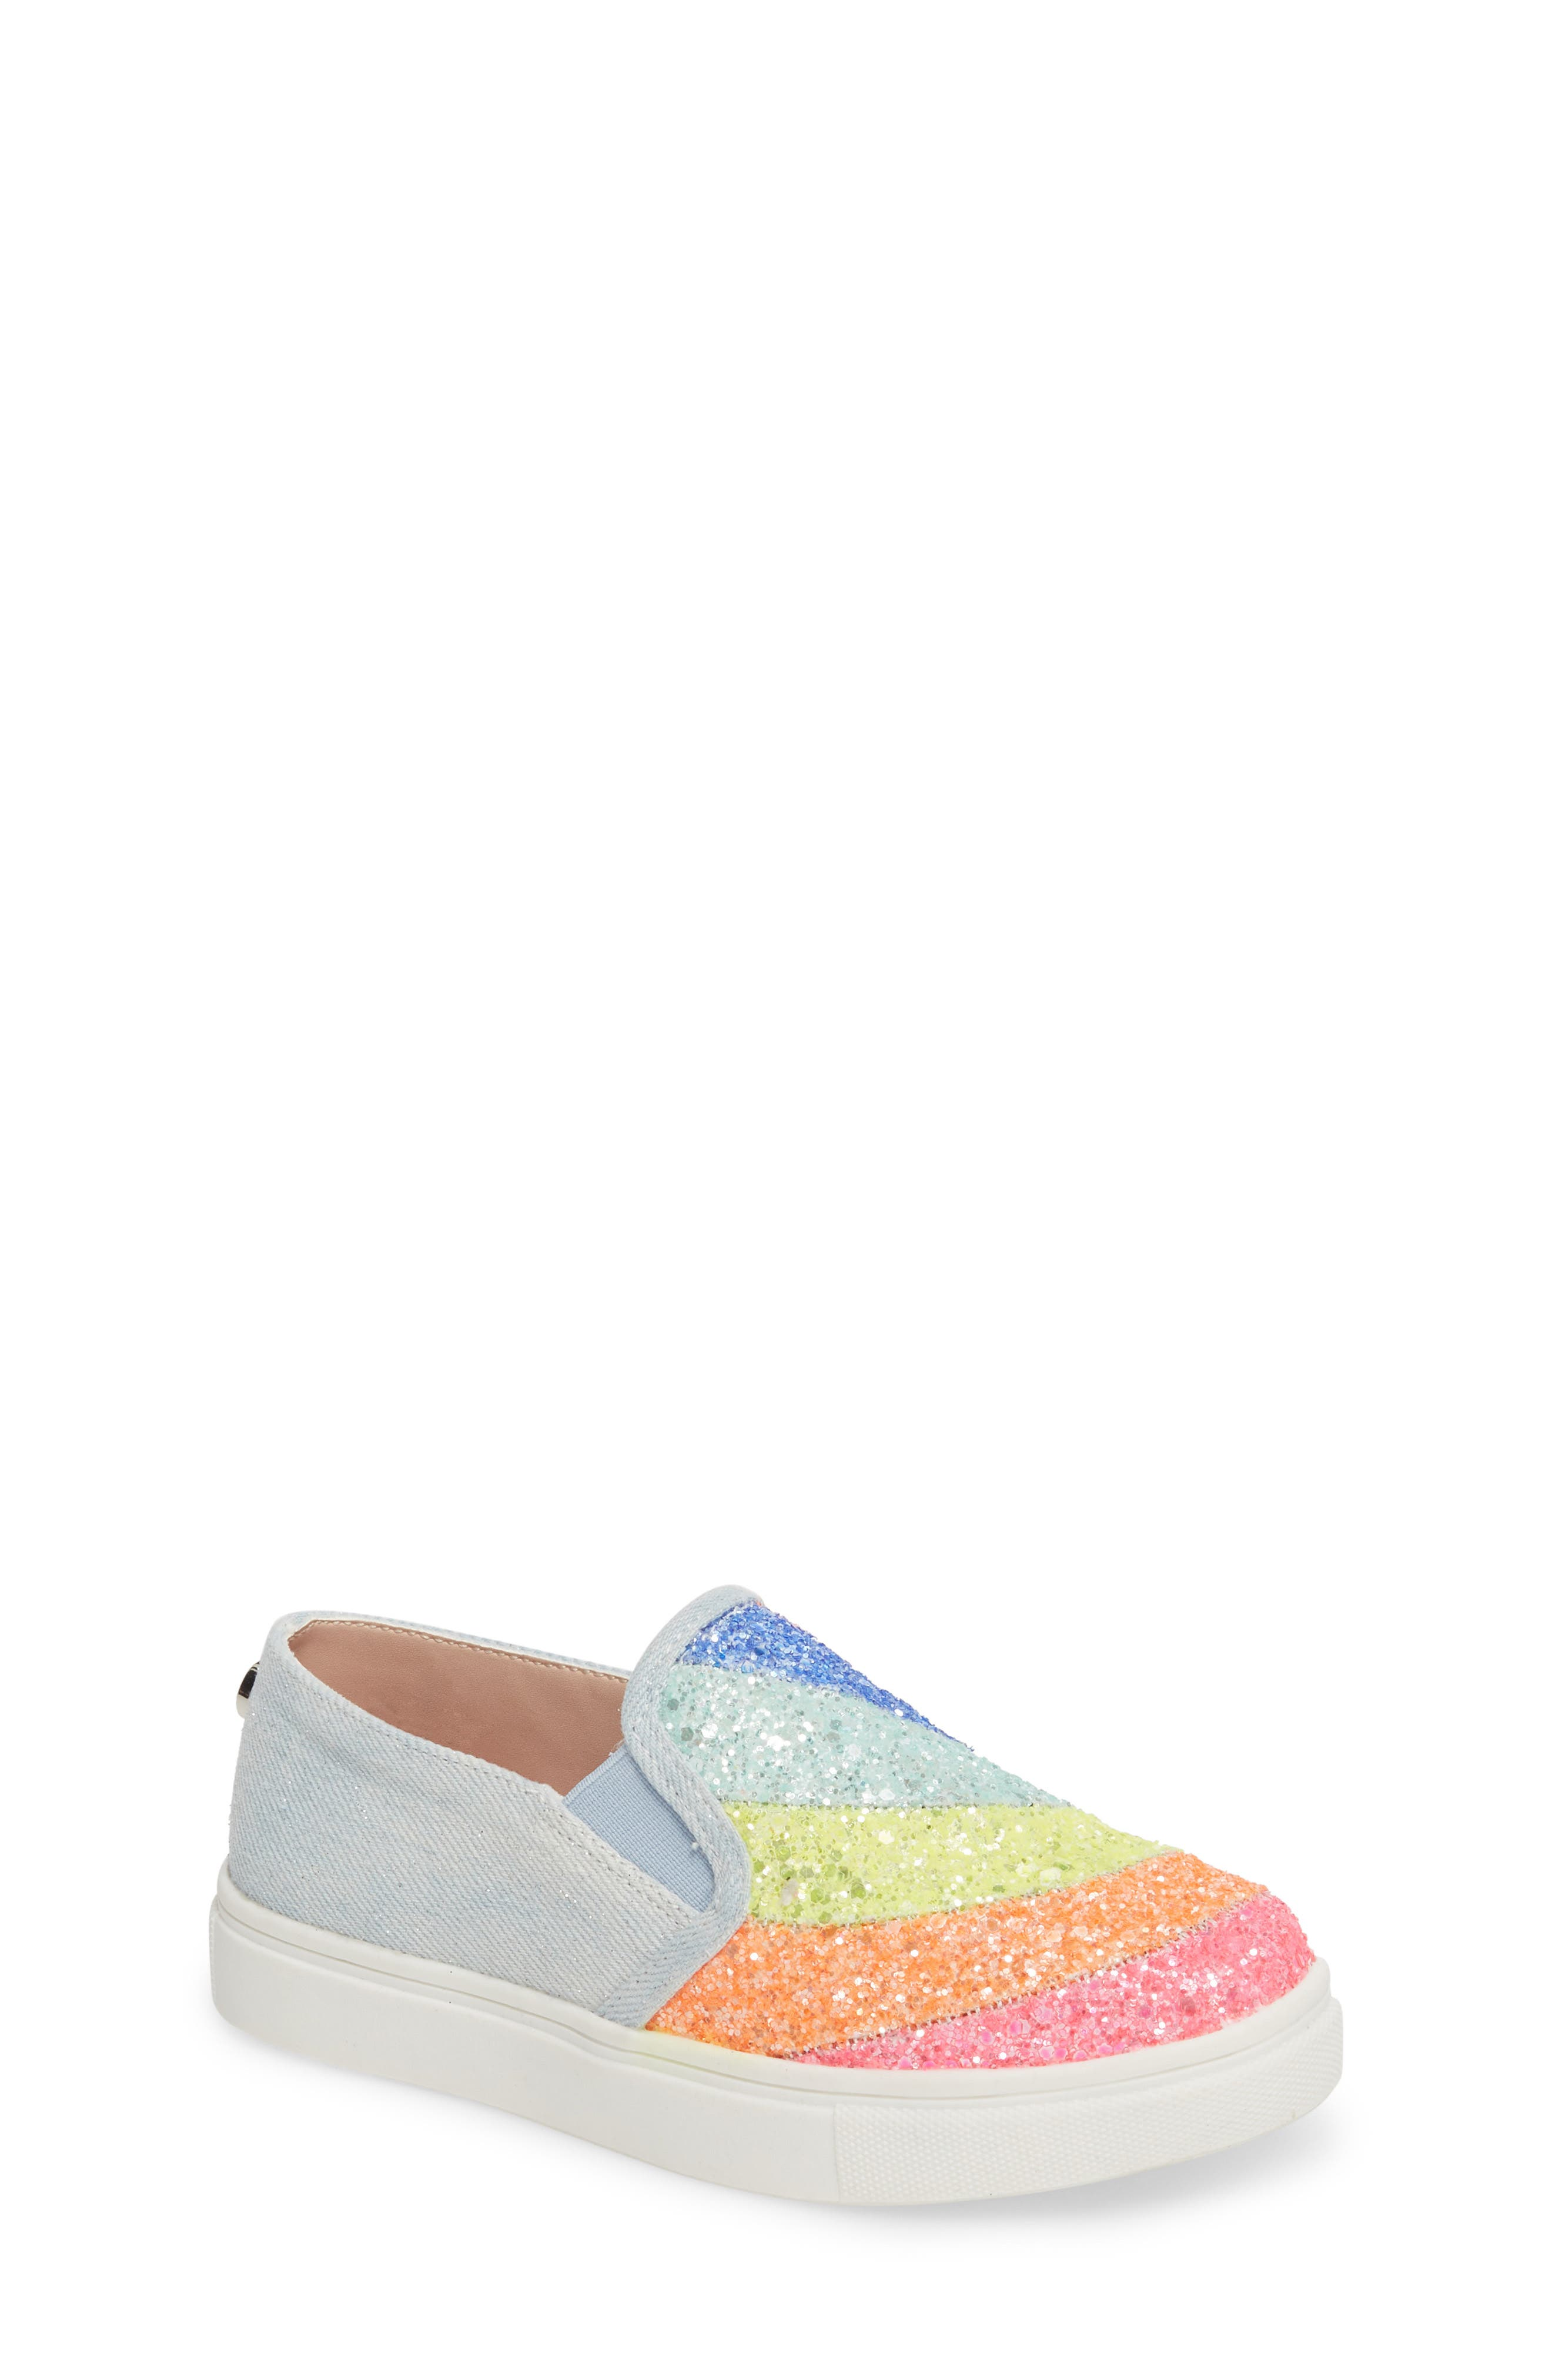 JWISH Rainbow Slip-On Sneaker,                             Main thumbnail 1, color,                             650